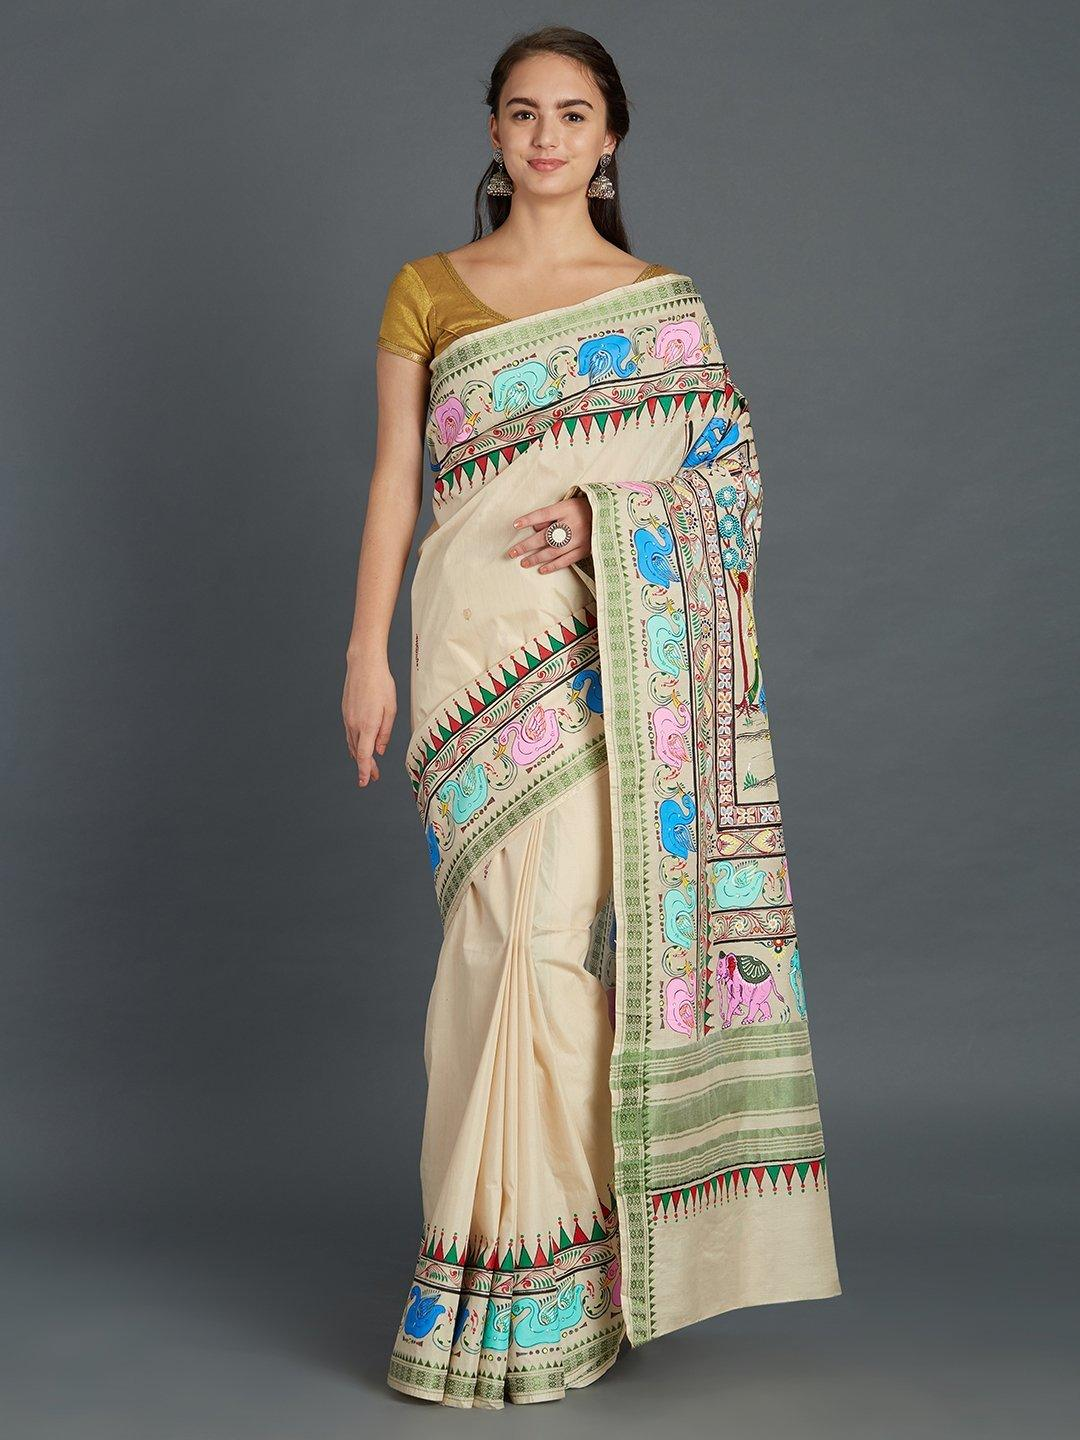 Cotton Saree with handpainted Pattachitra motifs